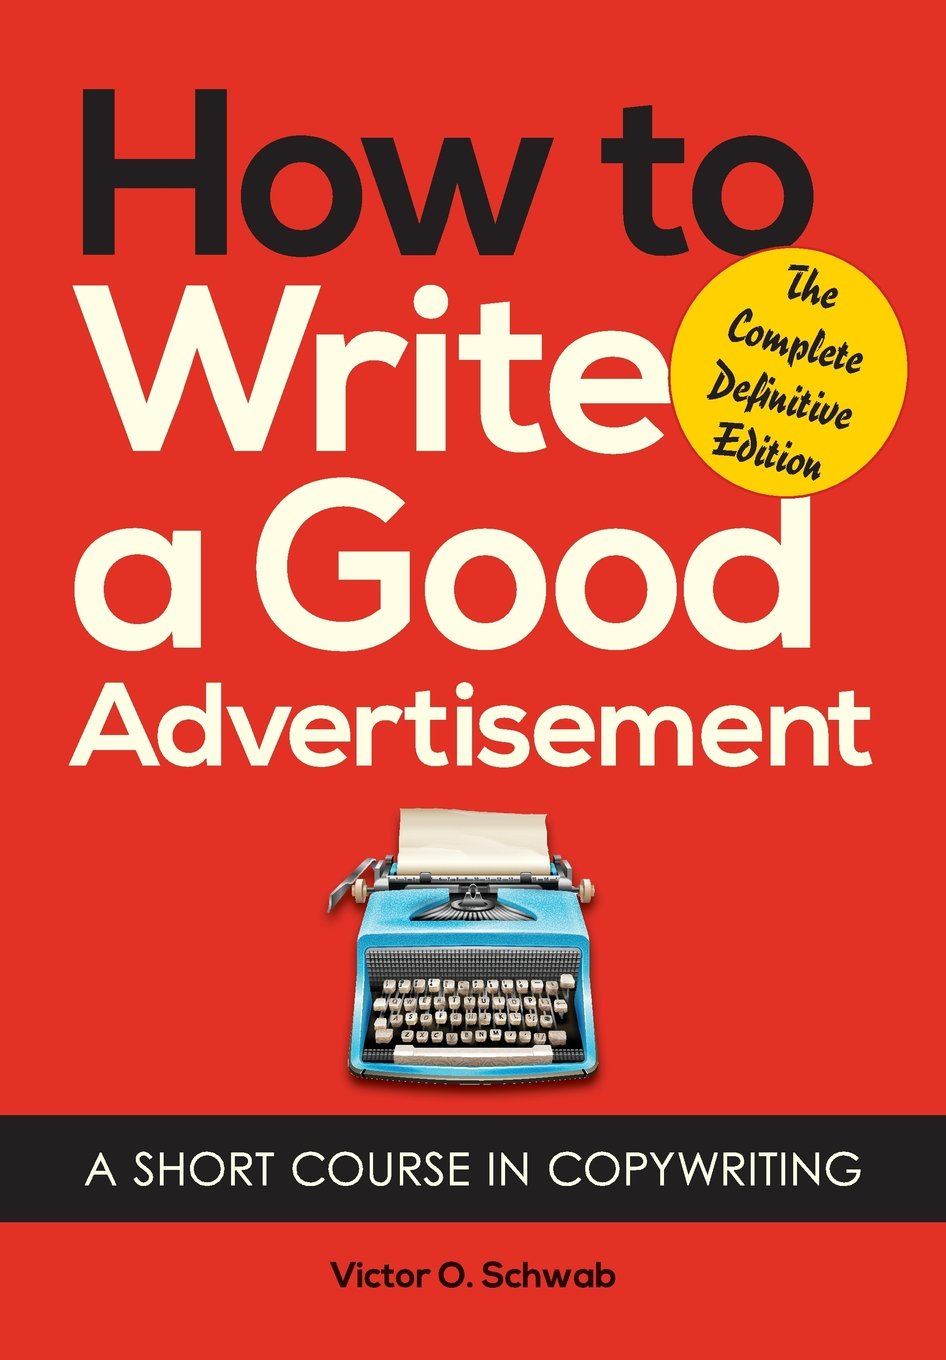 How to Write a Good Advertisement by Victor Schwab